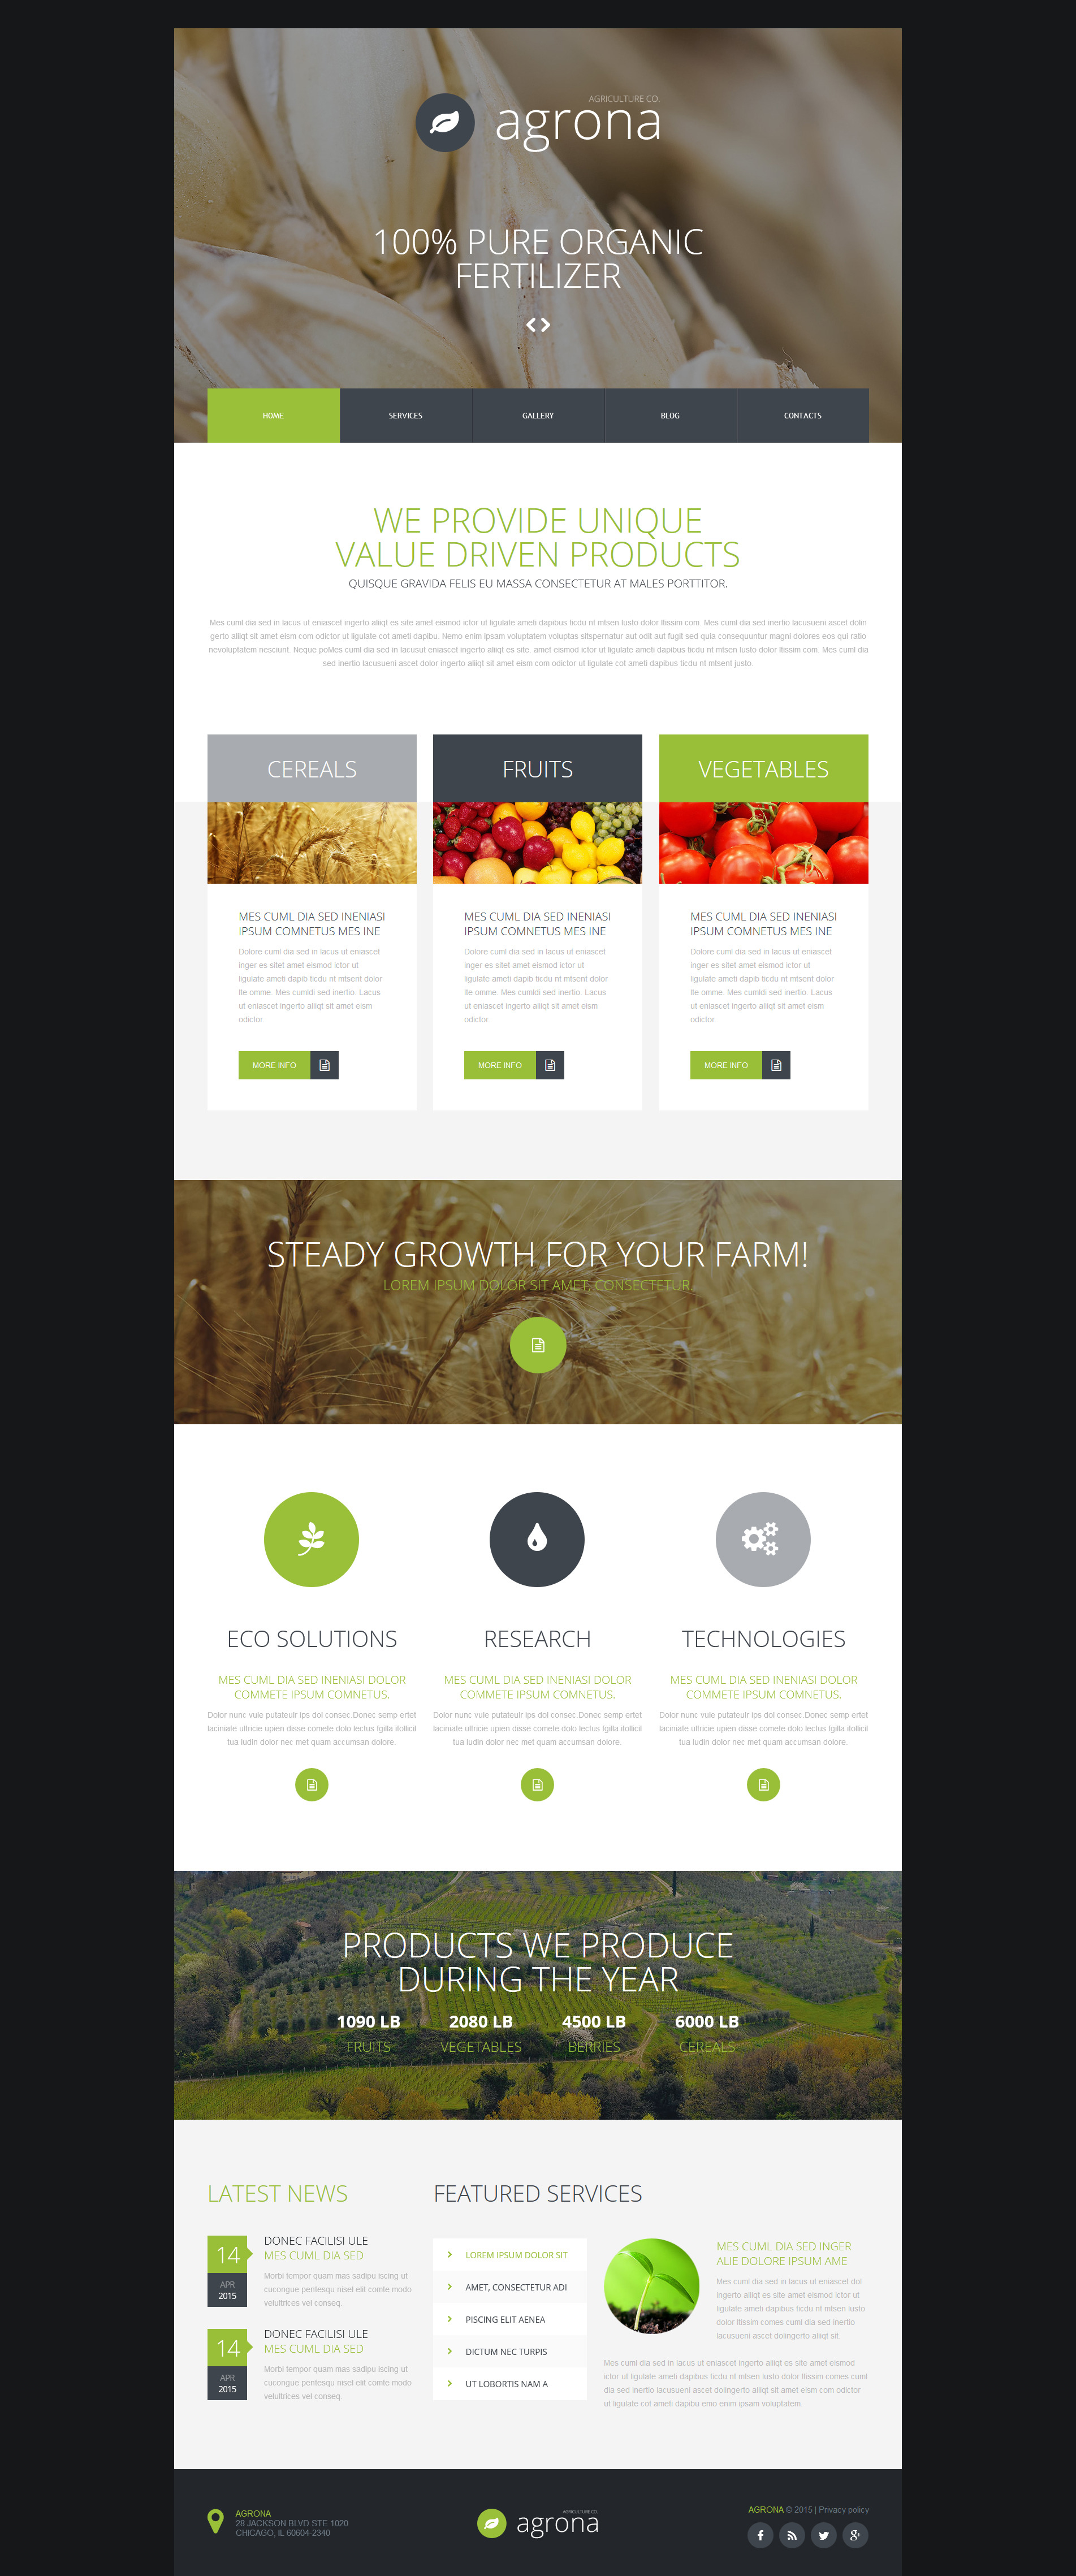 The Agriculture Company Joomla Design 53784, one of the best Joomla templates of its kind (agriculture, most popular), also known as agriculture company Joomla template, business Joomla template, grain-crops Joomla template, cereals Joomla template, field Joomla template, combine Joomla template, harvest Joomla template, farming Joomla template, plants Joomla template, services Joomla template, products solutions Joomla template, market Joomla template, delivery Joomla template, resource Joomla template, grassland Joomla template, equipment Joomla template, nitrates Joomla template, fertilizer Joomla template, clients Joomla template, partners Joomla template, innovations Joomla template, support Joomla template, information dealer Joomla template, stocks and related with agriculture company, business, grain-crops, cereals, field, combine, harvest, farming, plants, services, products solutions, market, delivery, resource, grassland, equipment, nitrates, fertilizer, clients, partners, innovations, support, information dealer, stocks, etc.